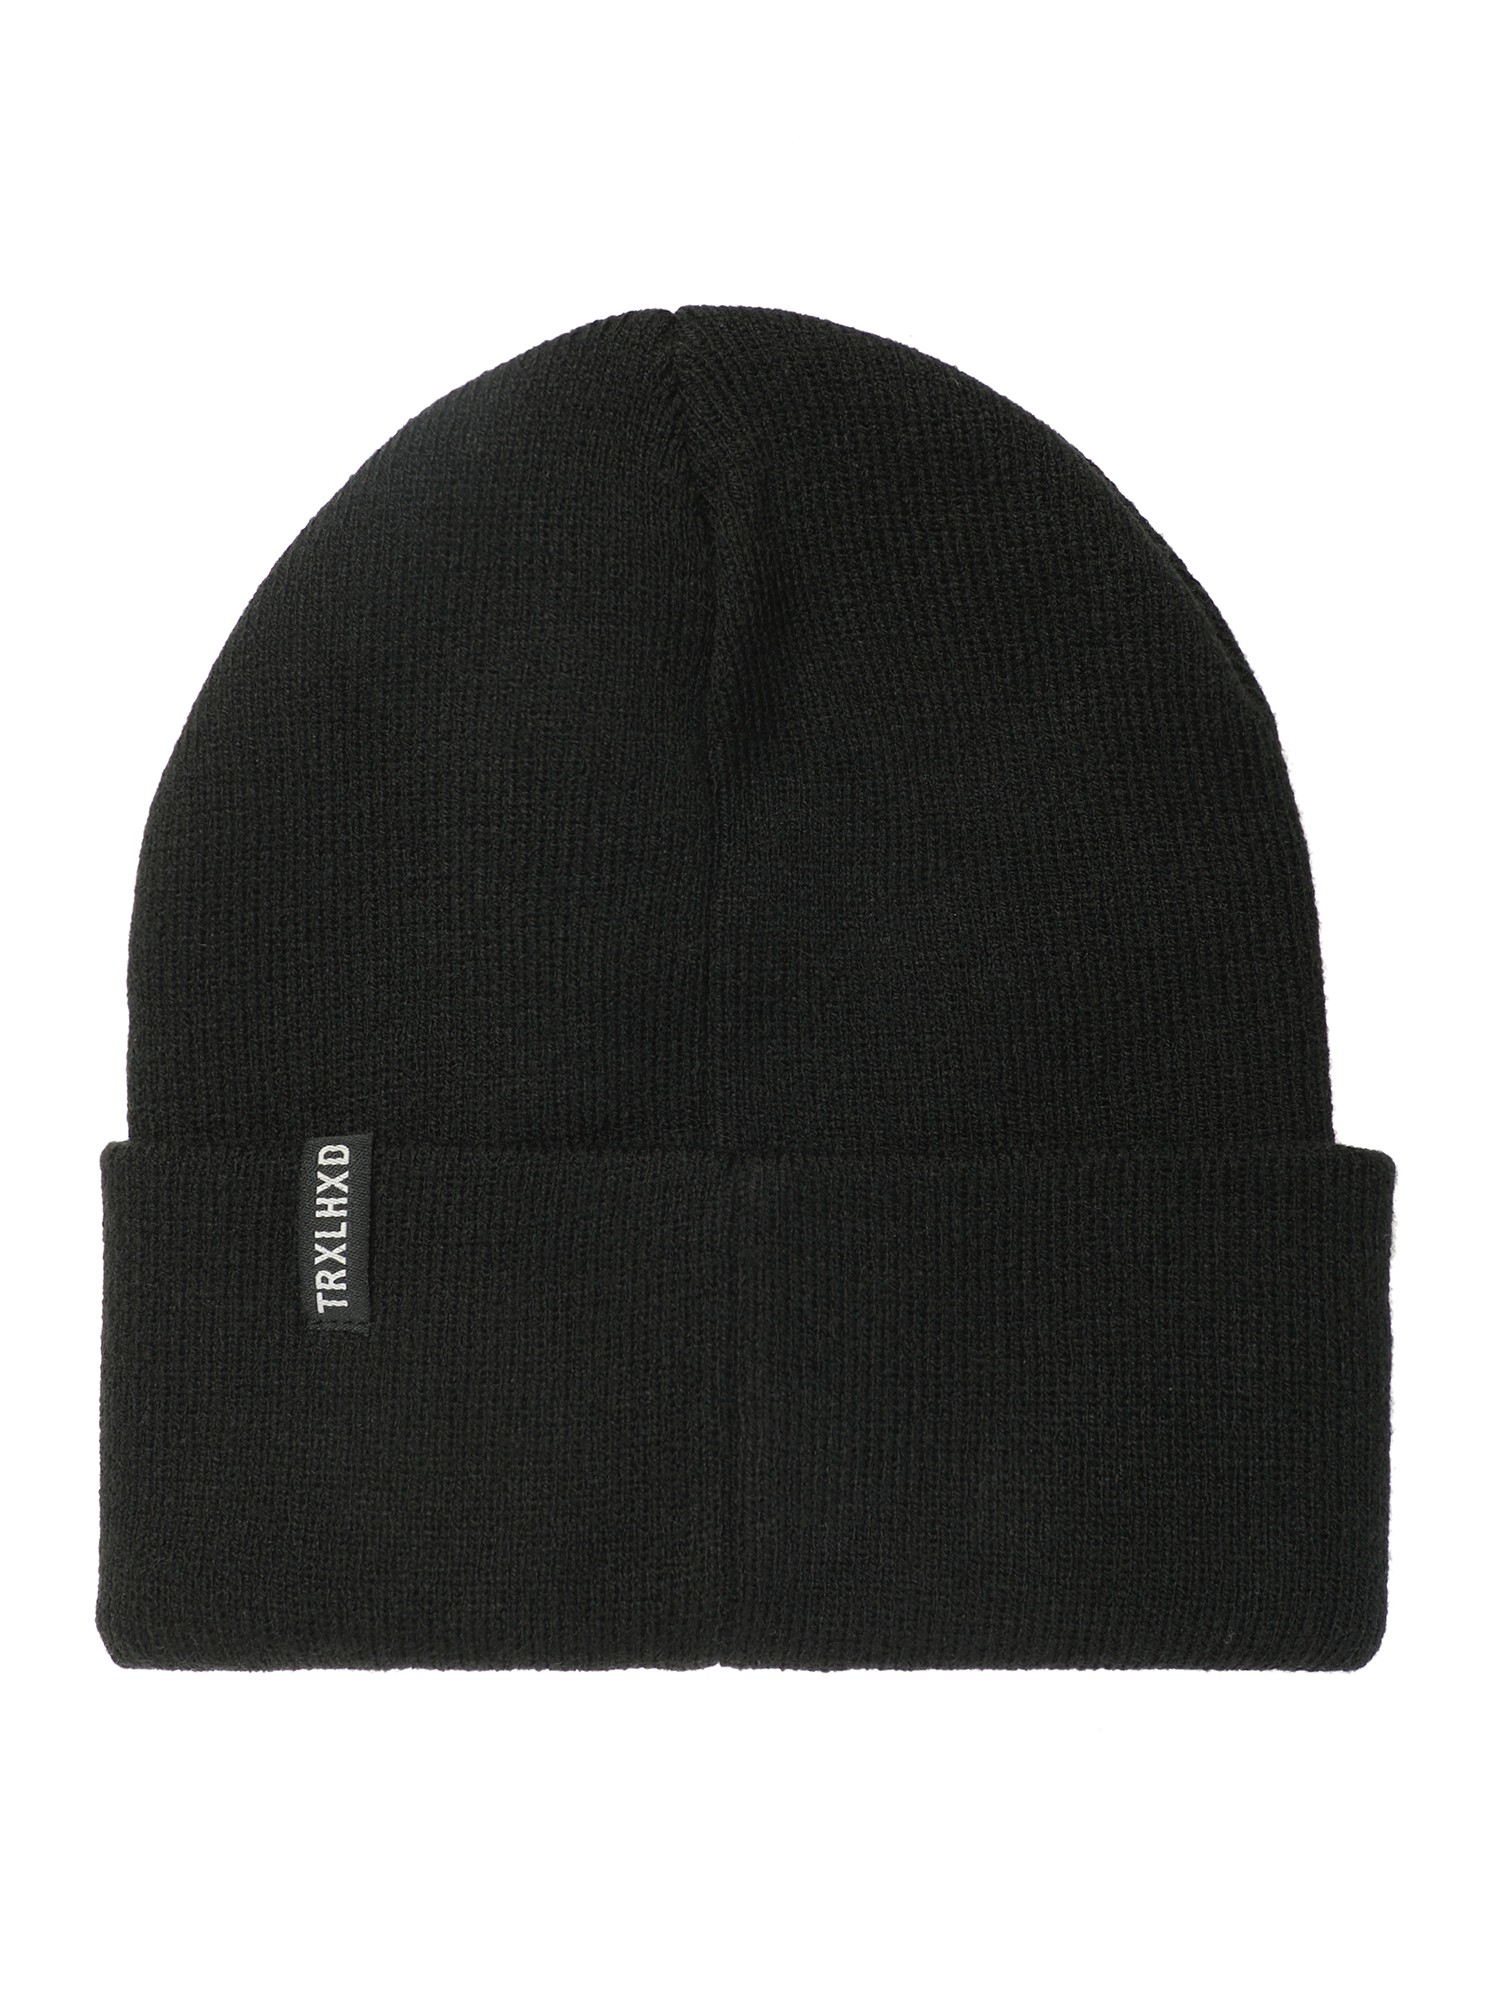 Шапка TRAILHEAD HAT19-EMB-MUSCLE-BK, HAT19-EMB-MUSCLE, фото 3